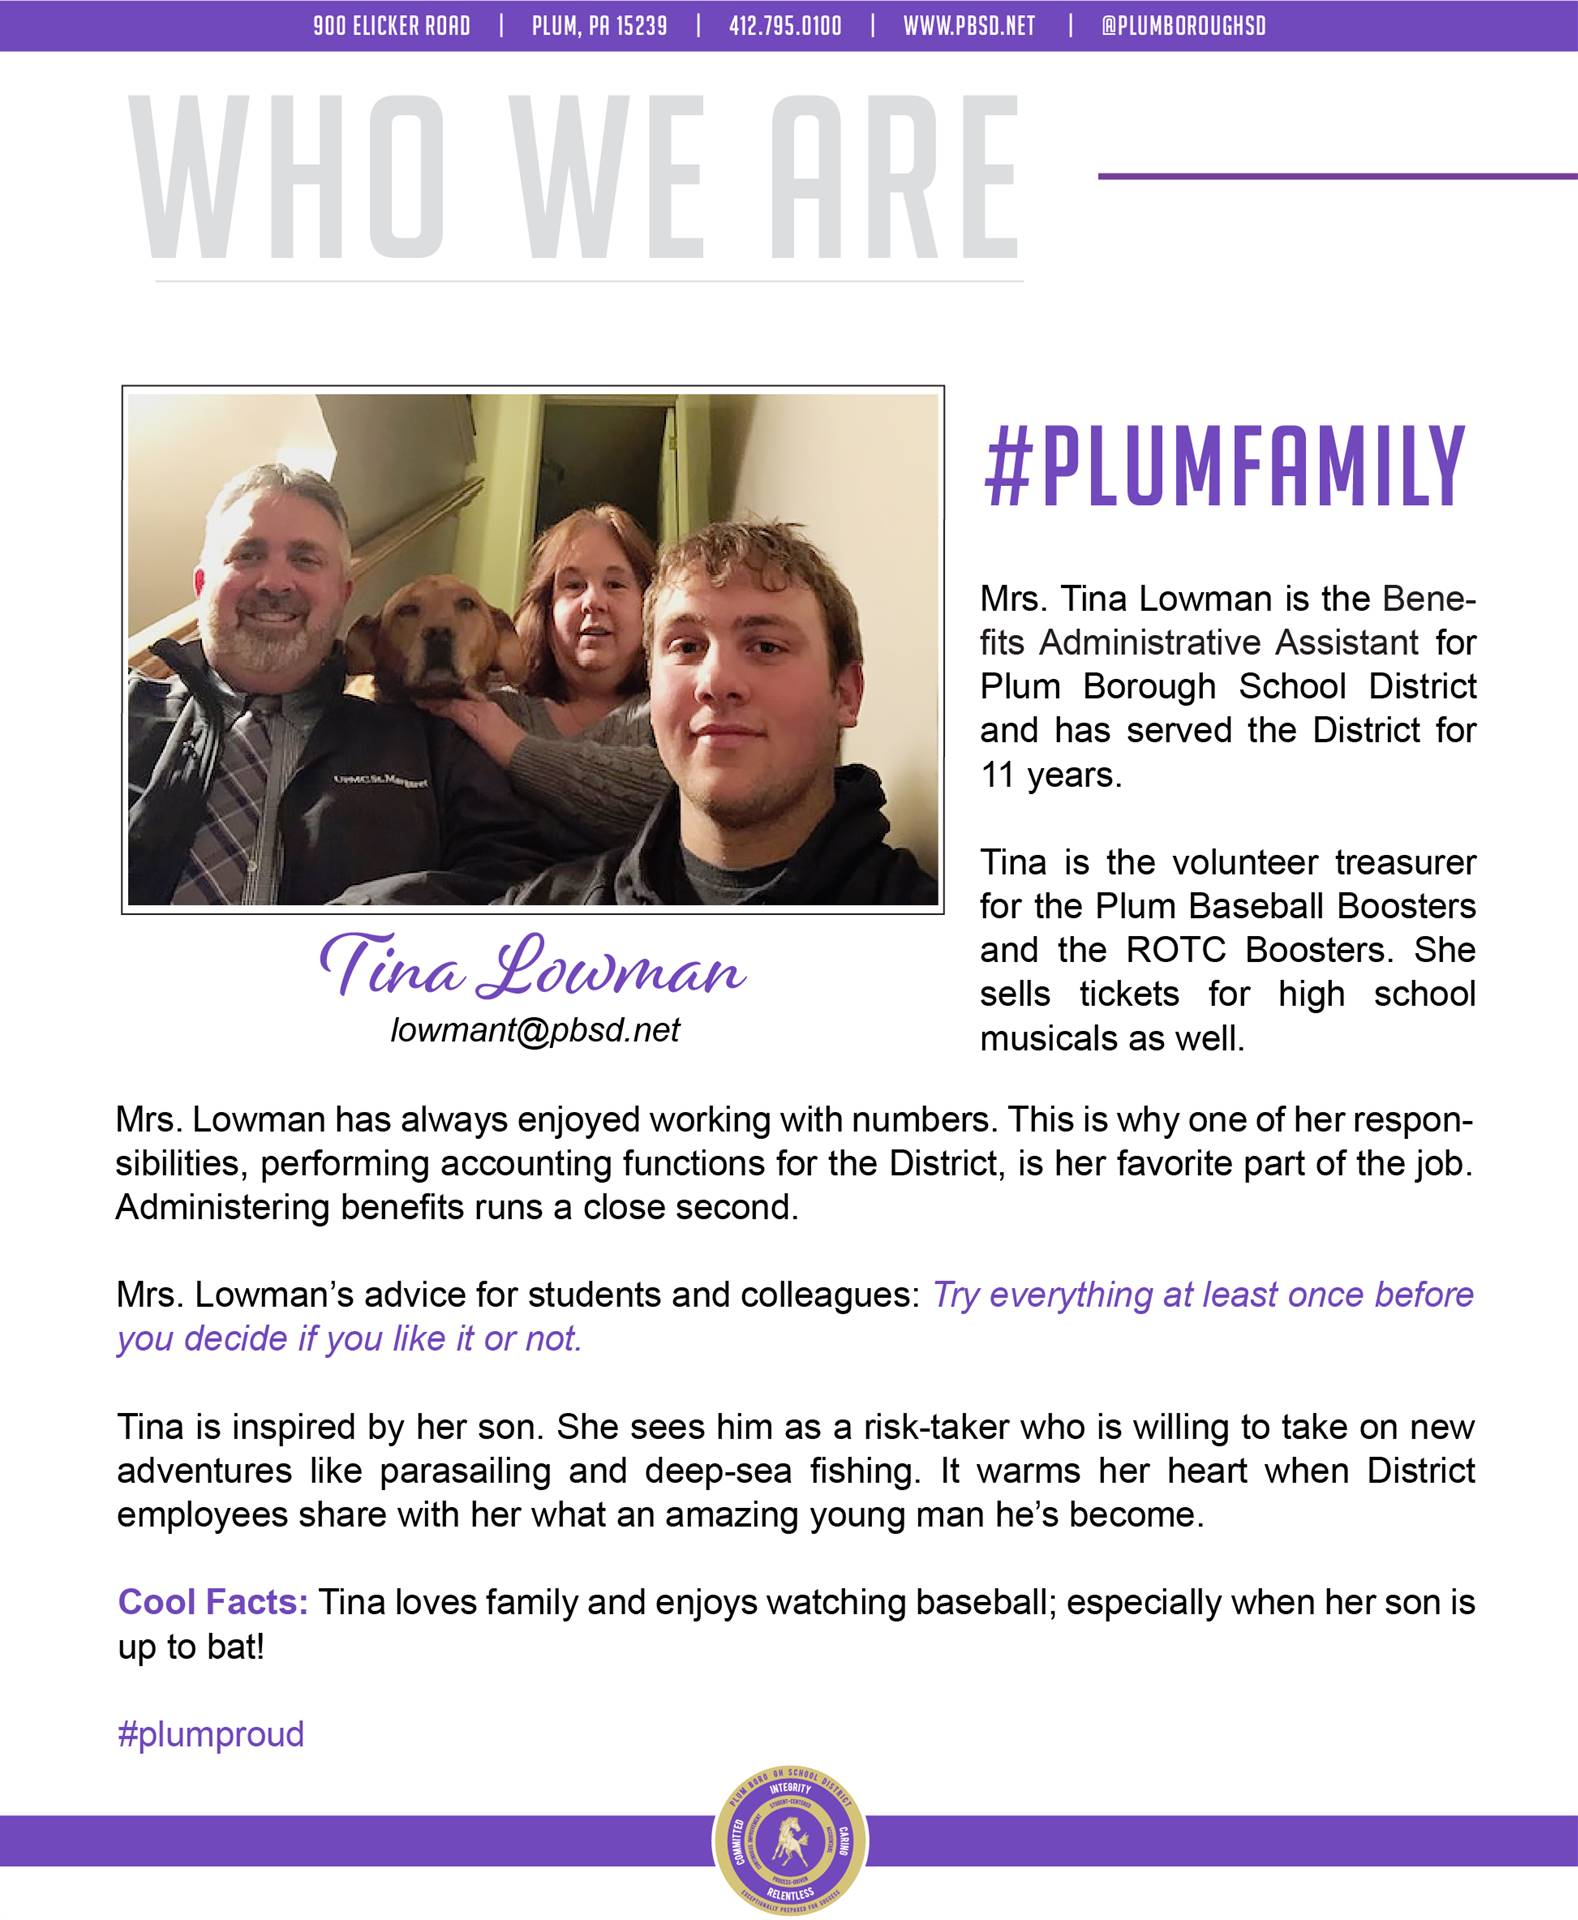 Who We Are Wednesday features Tina Lowman.